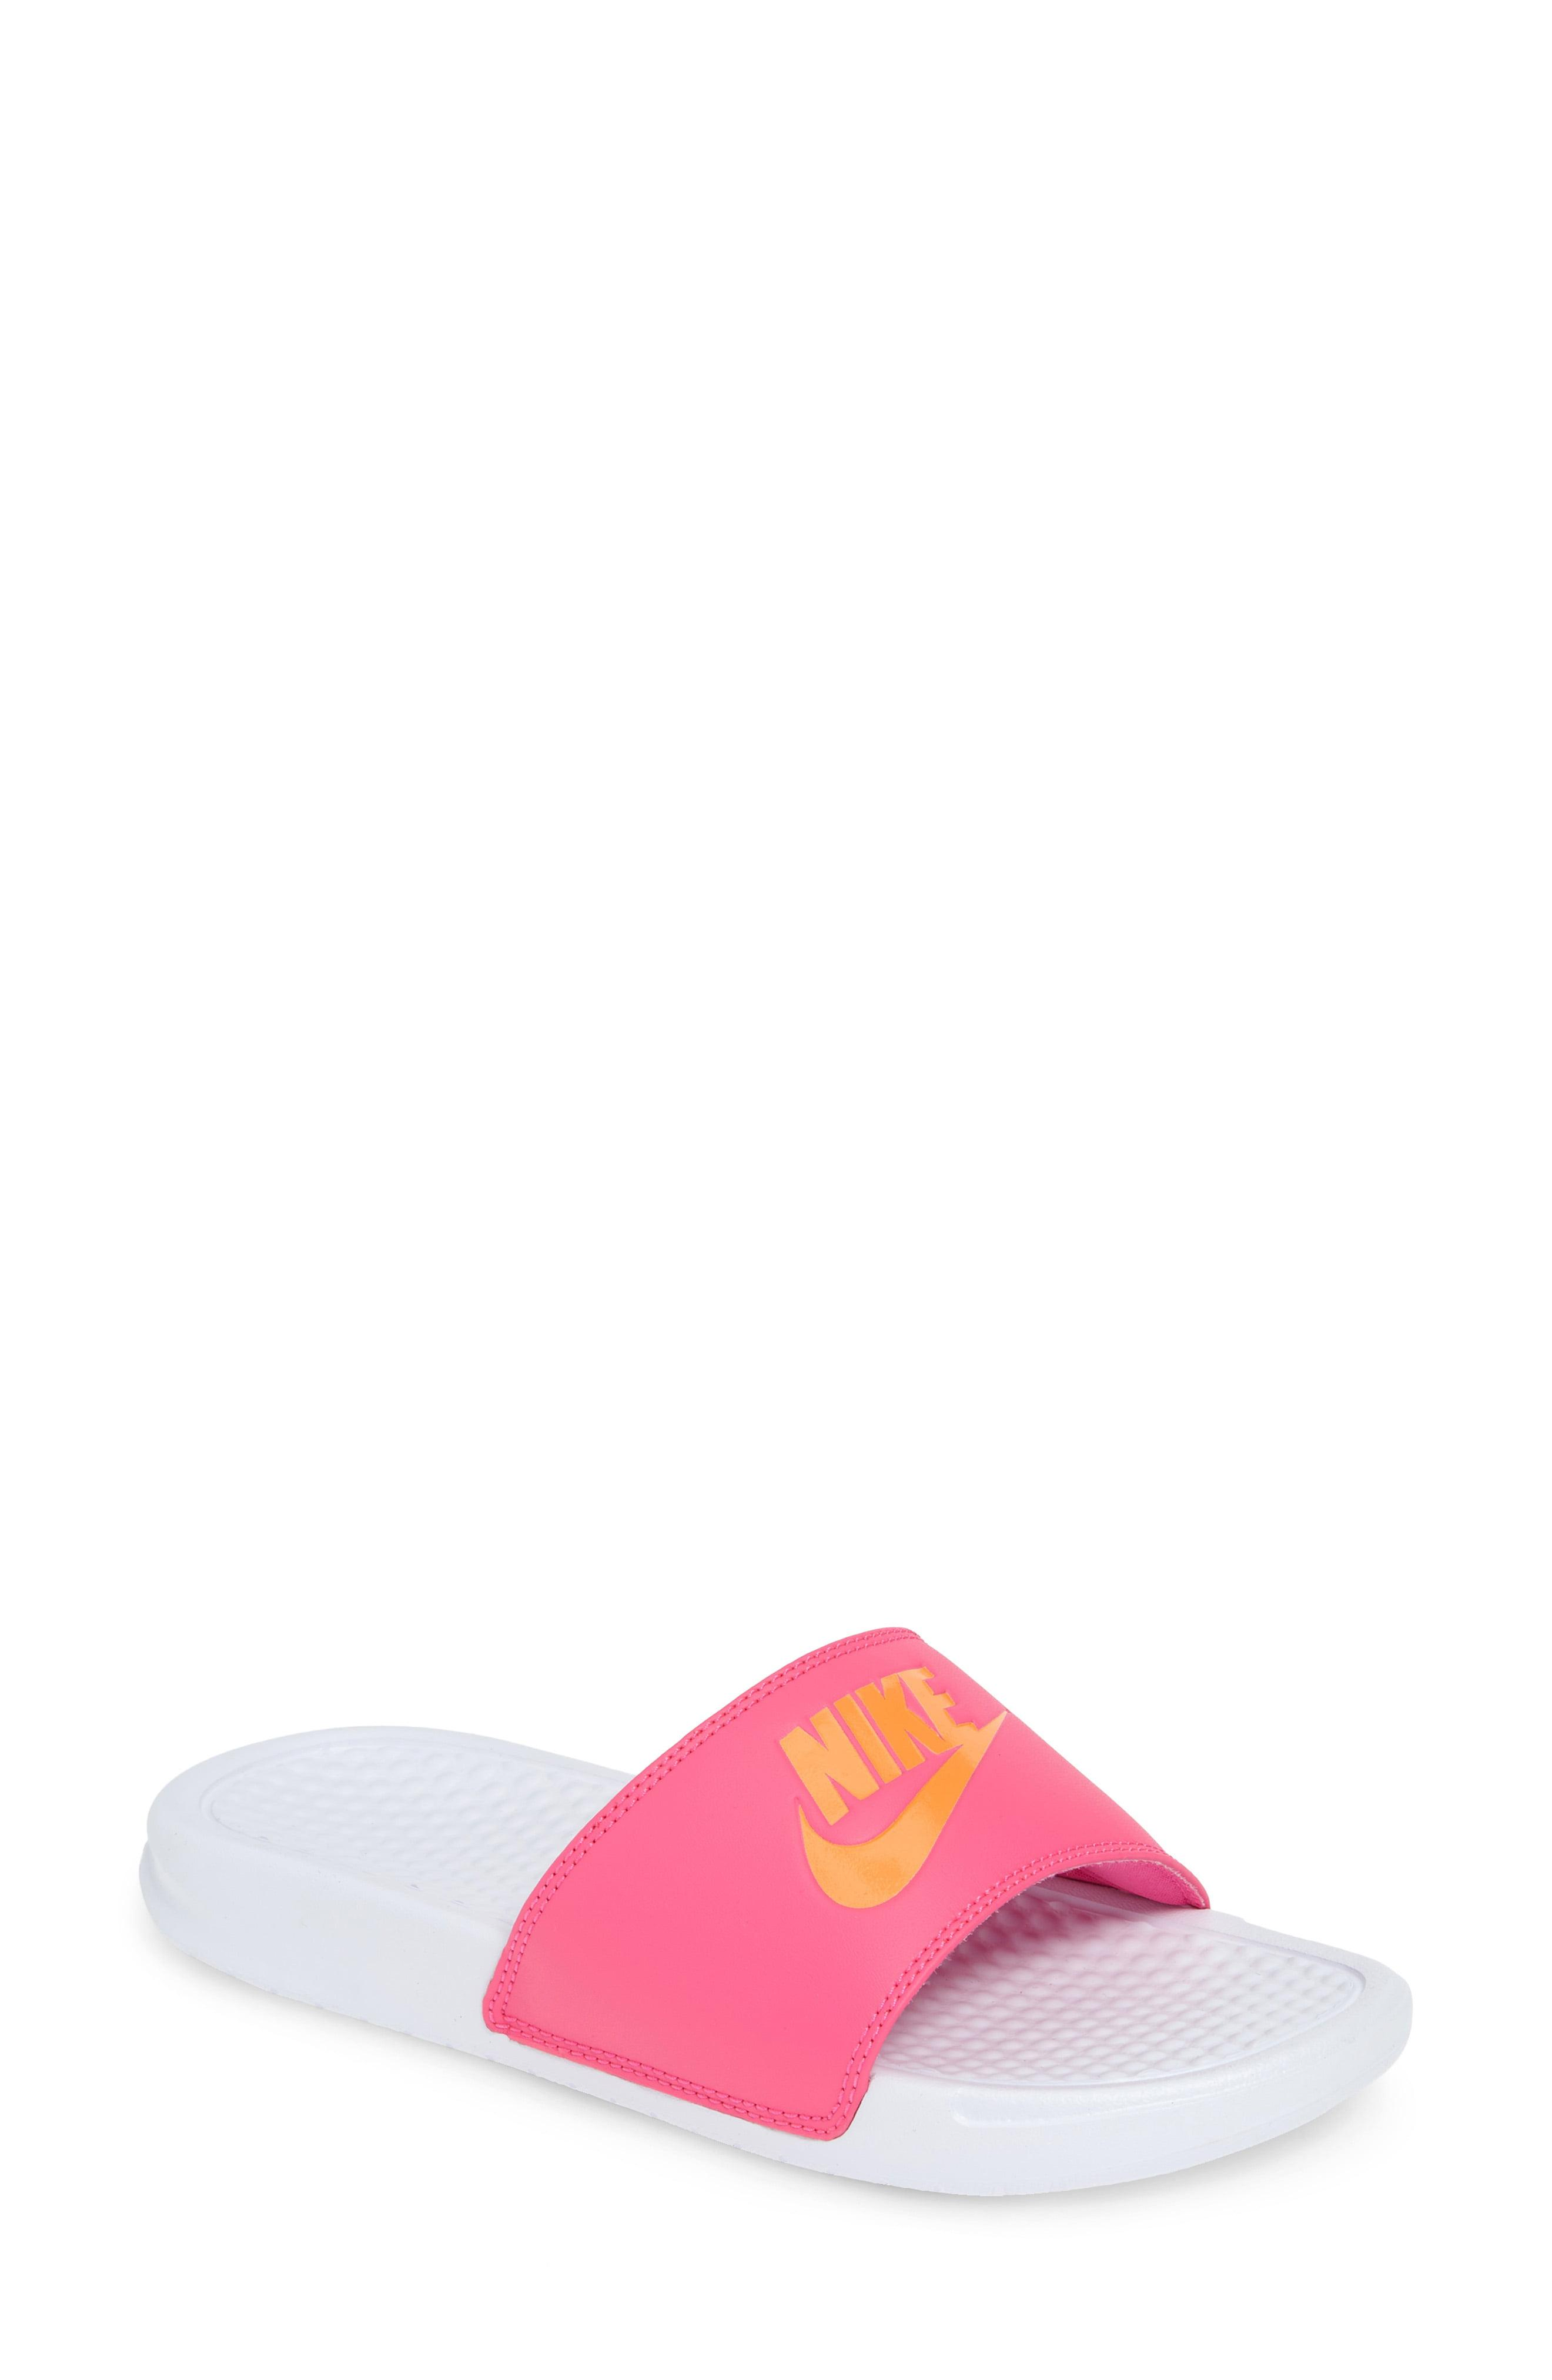 a9a8e6133eb Lyst - Nike Benassi Jdi Slide Sandal in Orange